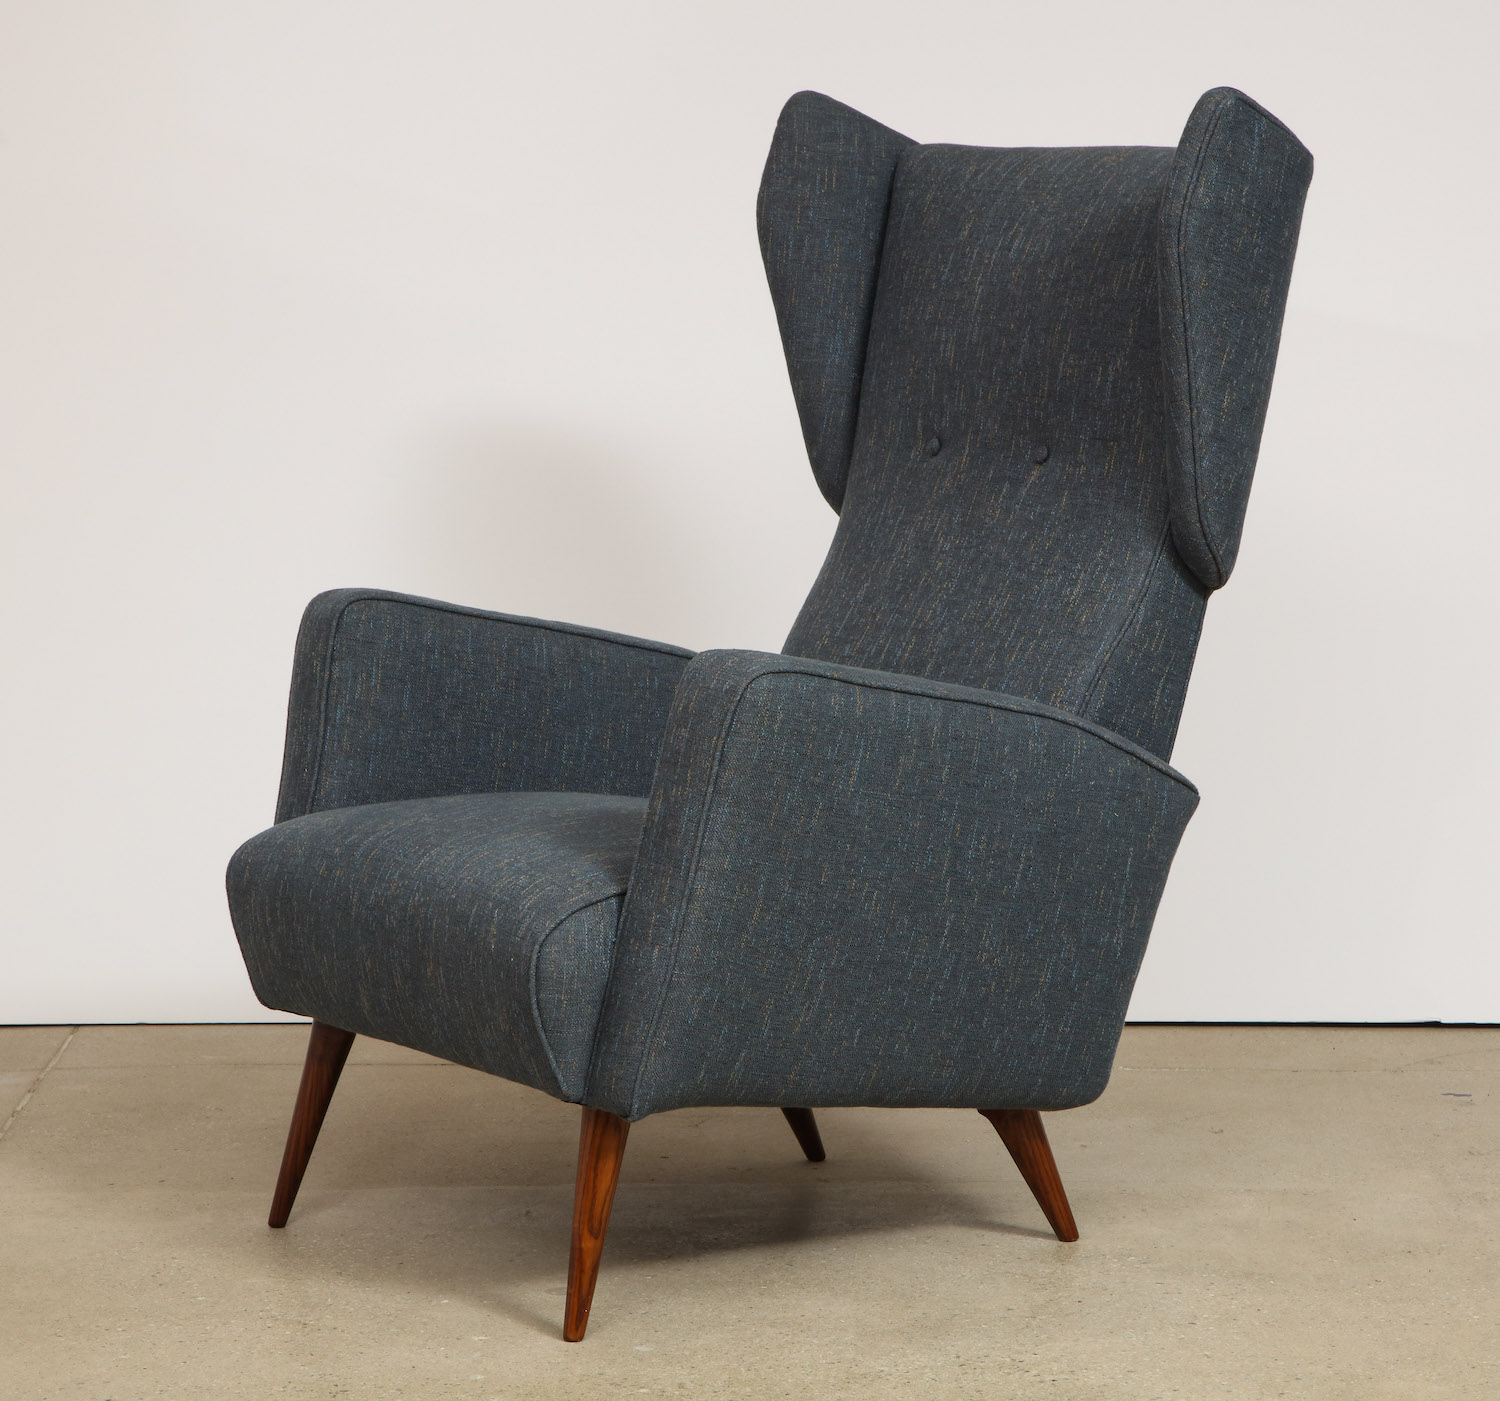 Ponti Dassi Wing Chairs 8.jpg